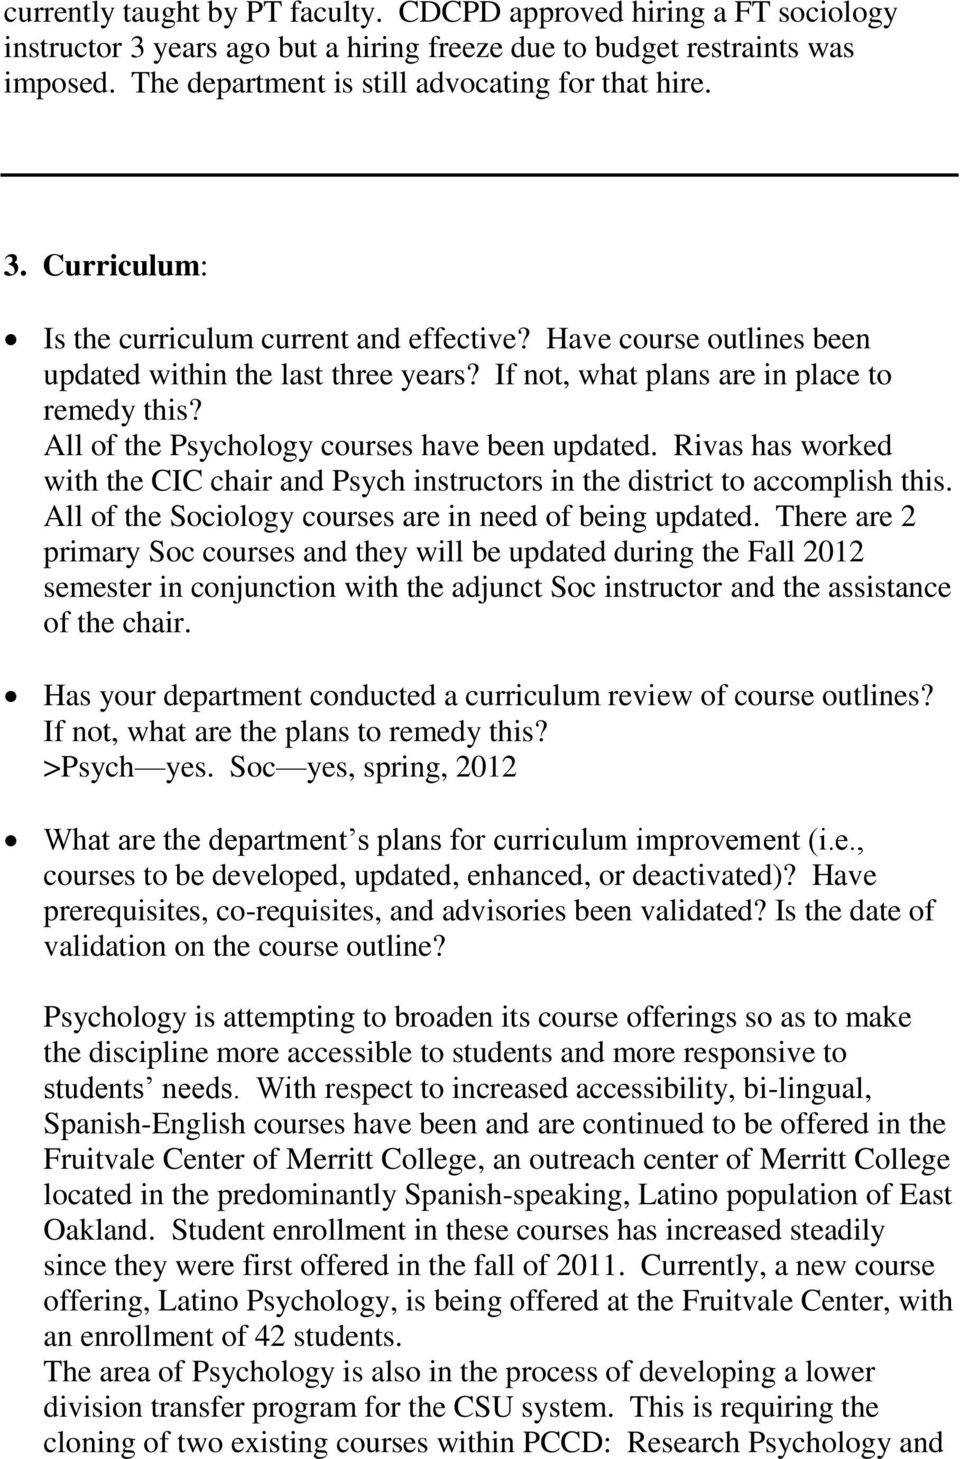 All of the Psychology courses have been updated. Rivas has worked with the CIC chair and Psych instructors in the district to accomplish this.